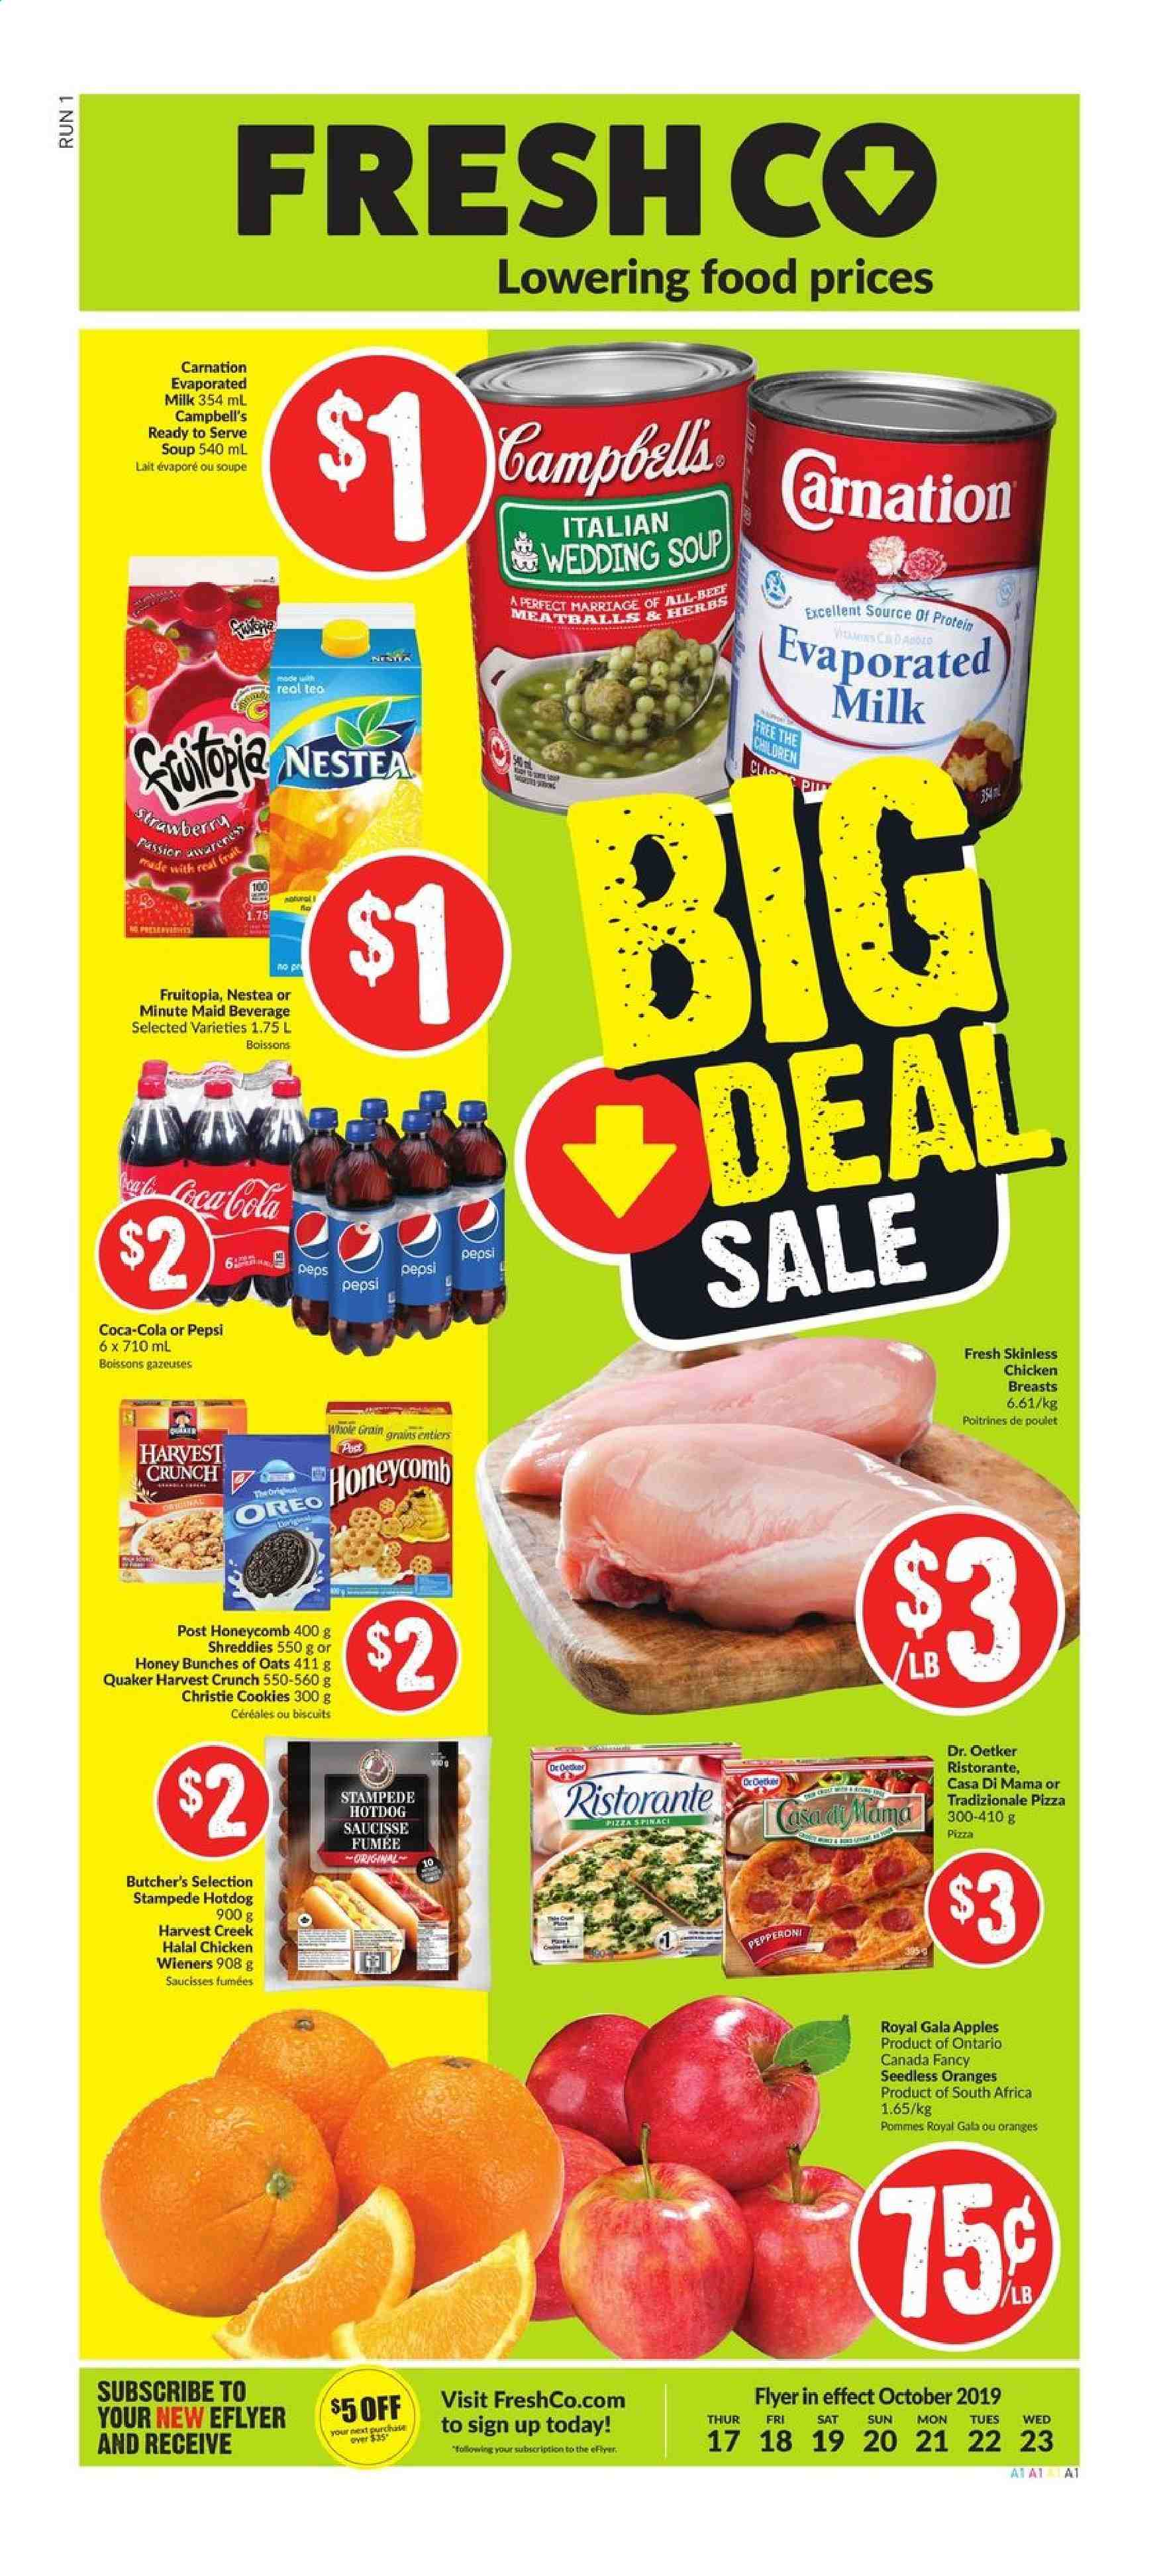 FreshCo. Flyer  - October 17, 2019 - October 23, 2019. Page 1.